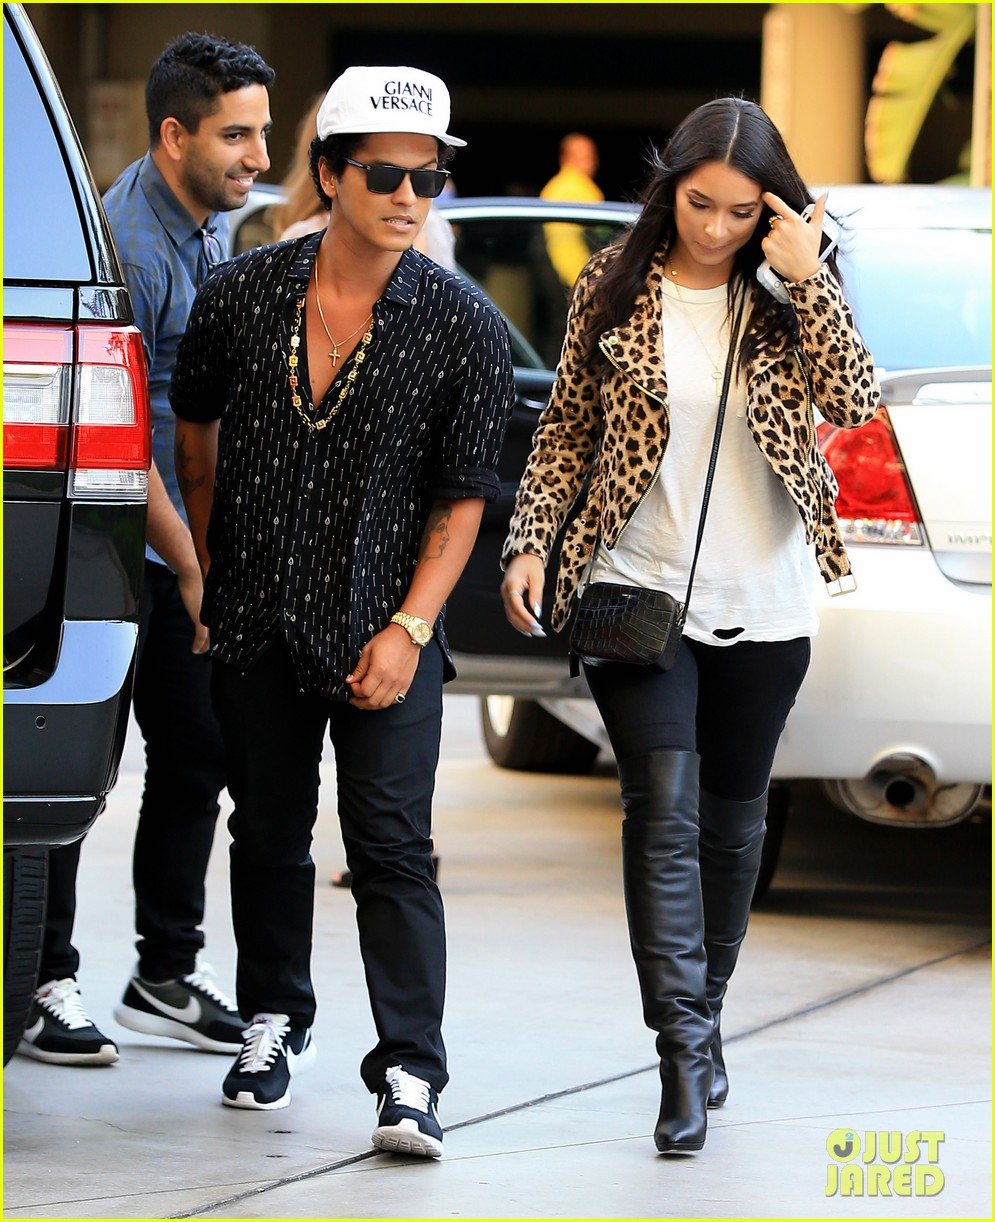 Bruno Mars Out and About With Girlfriend in L.A